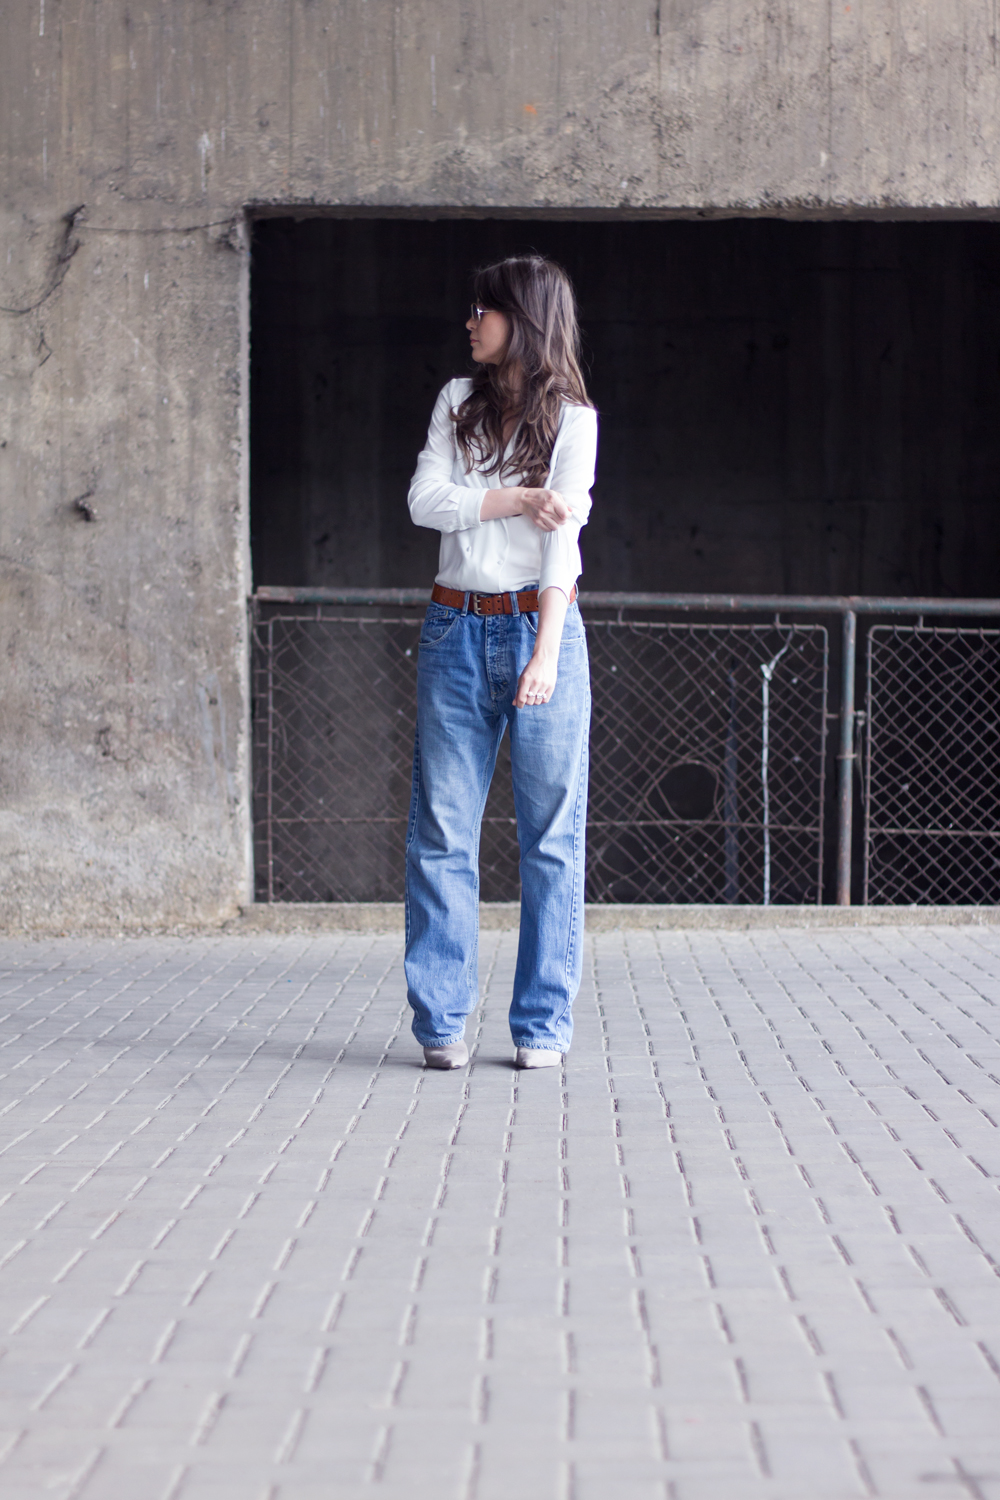 1990s Baggy Jeans on AfterTwoFive.com